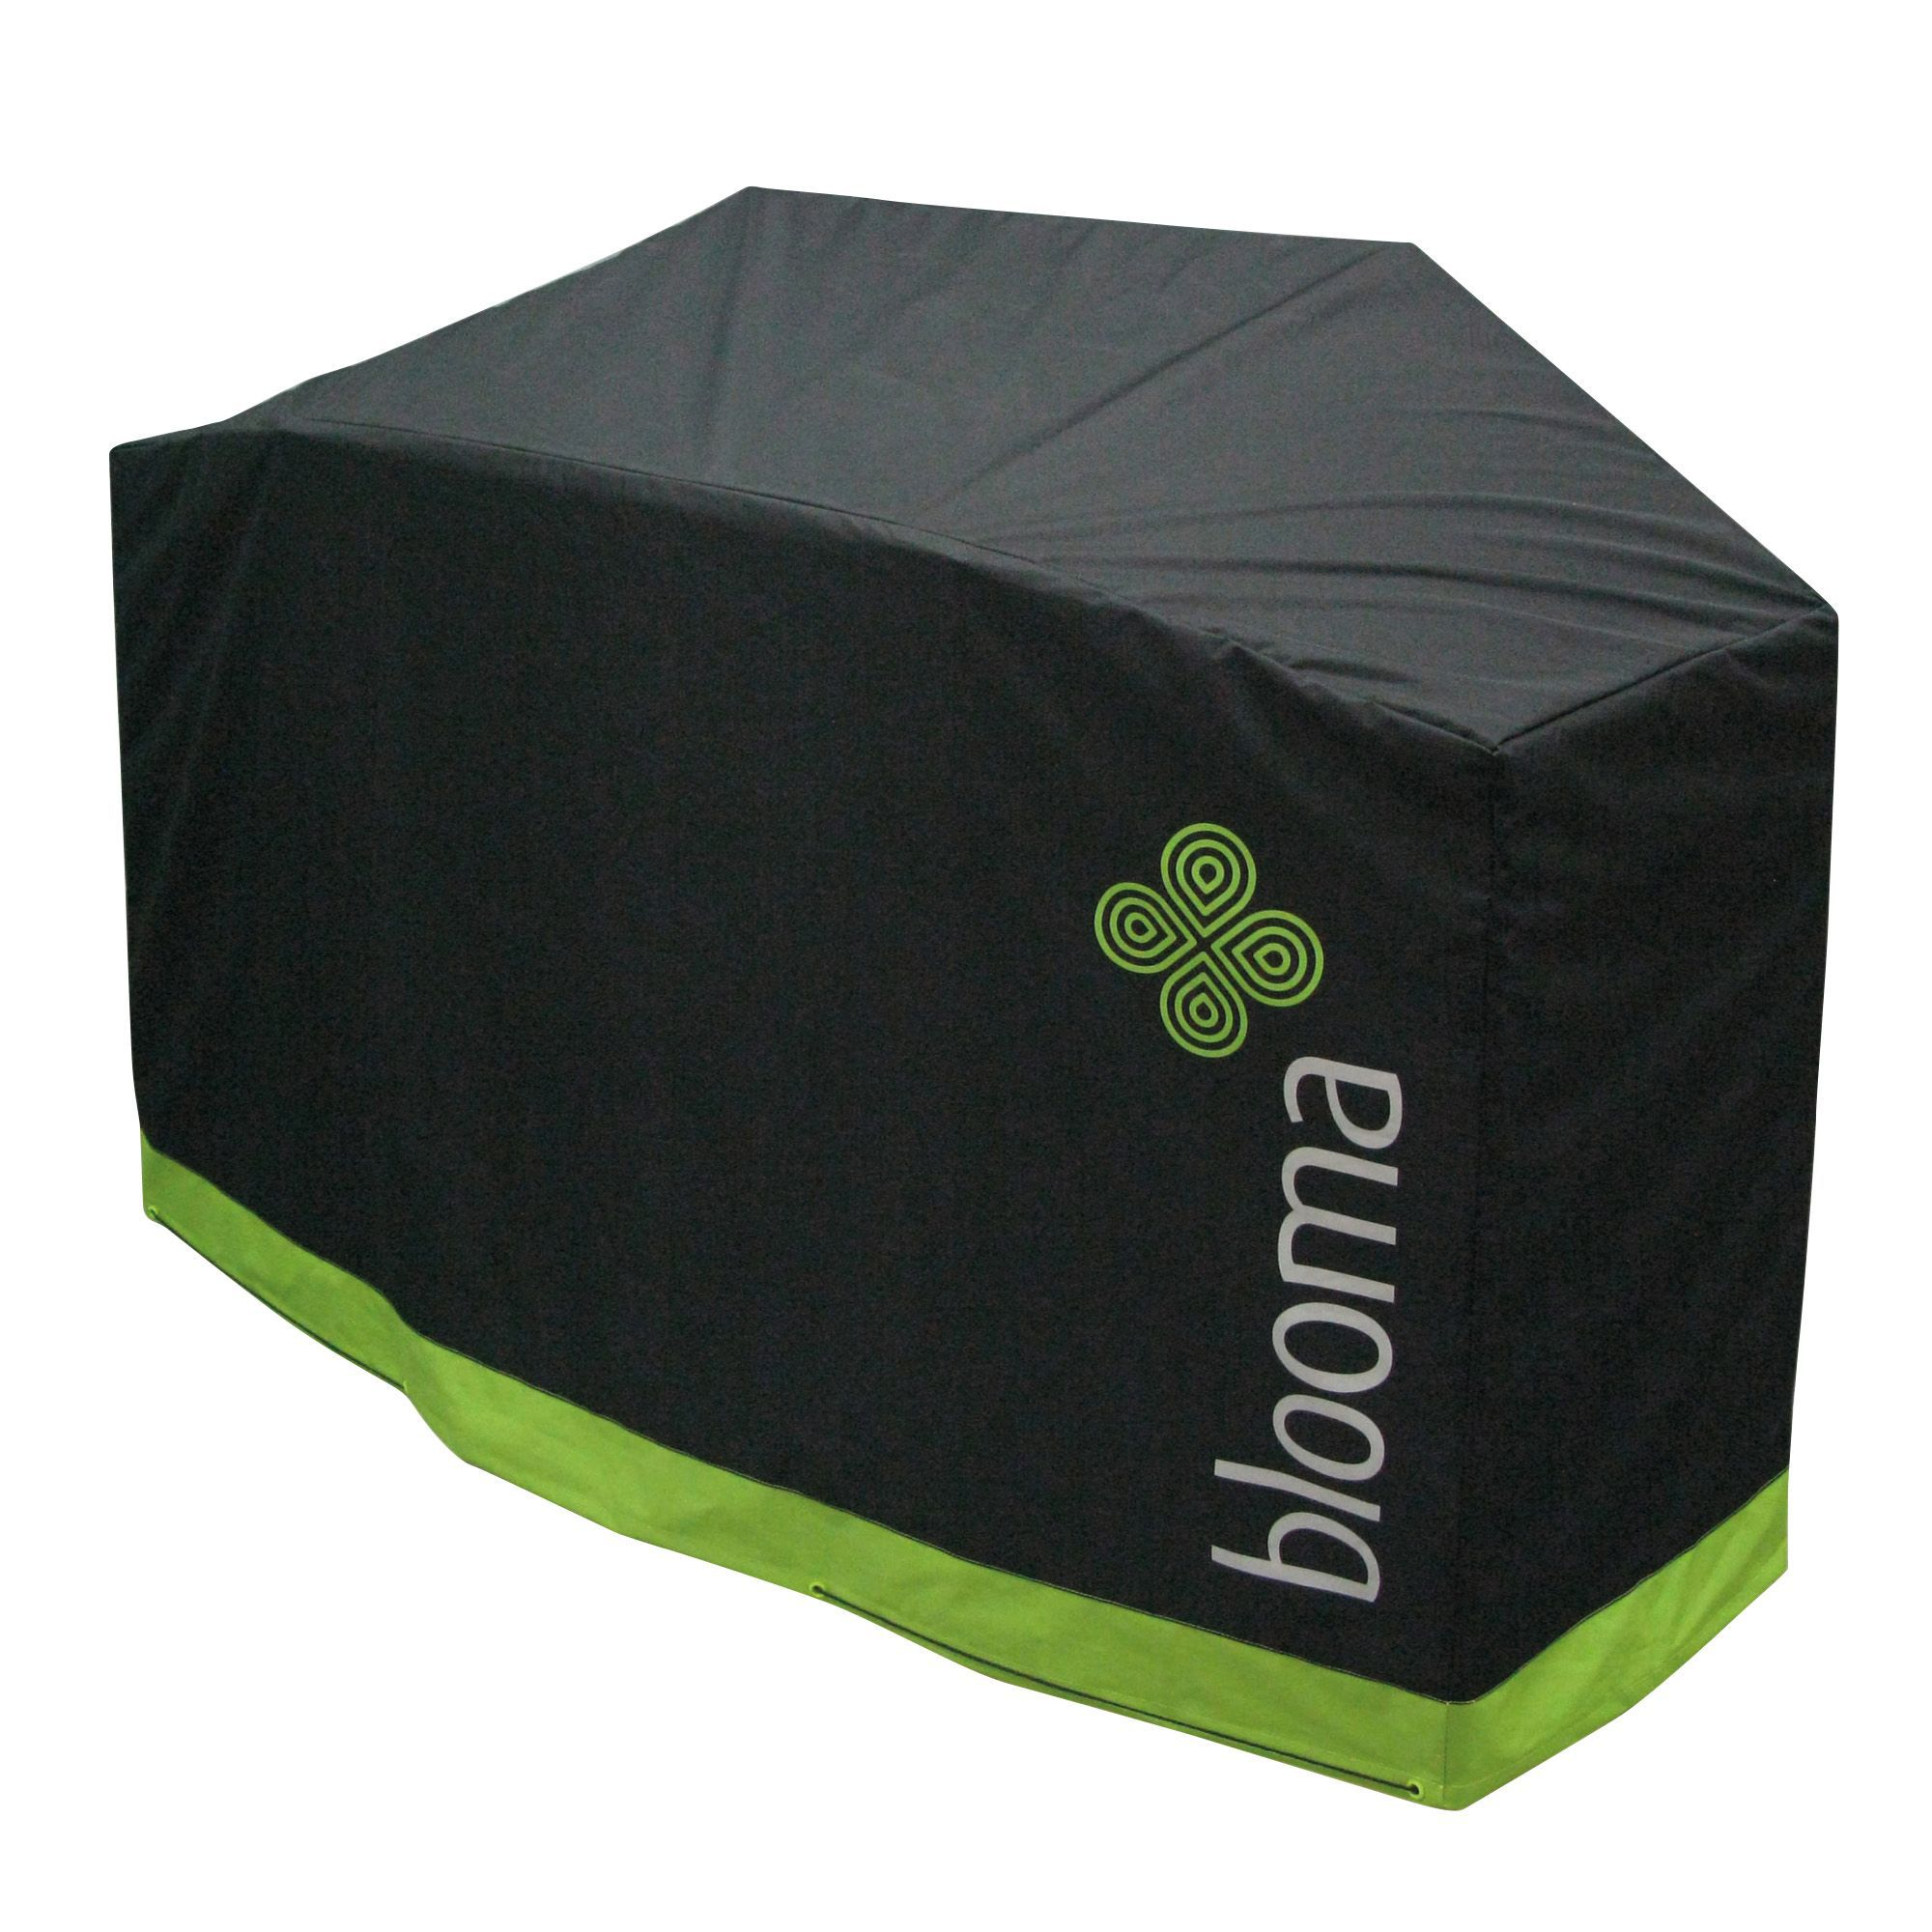 Blooma byron g450 barbecue cover departments tradepoint for Housse blooma